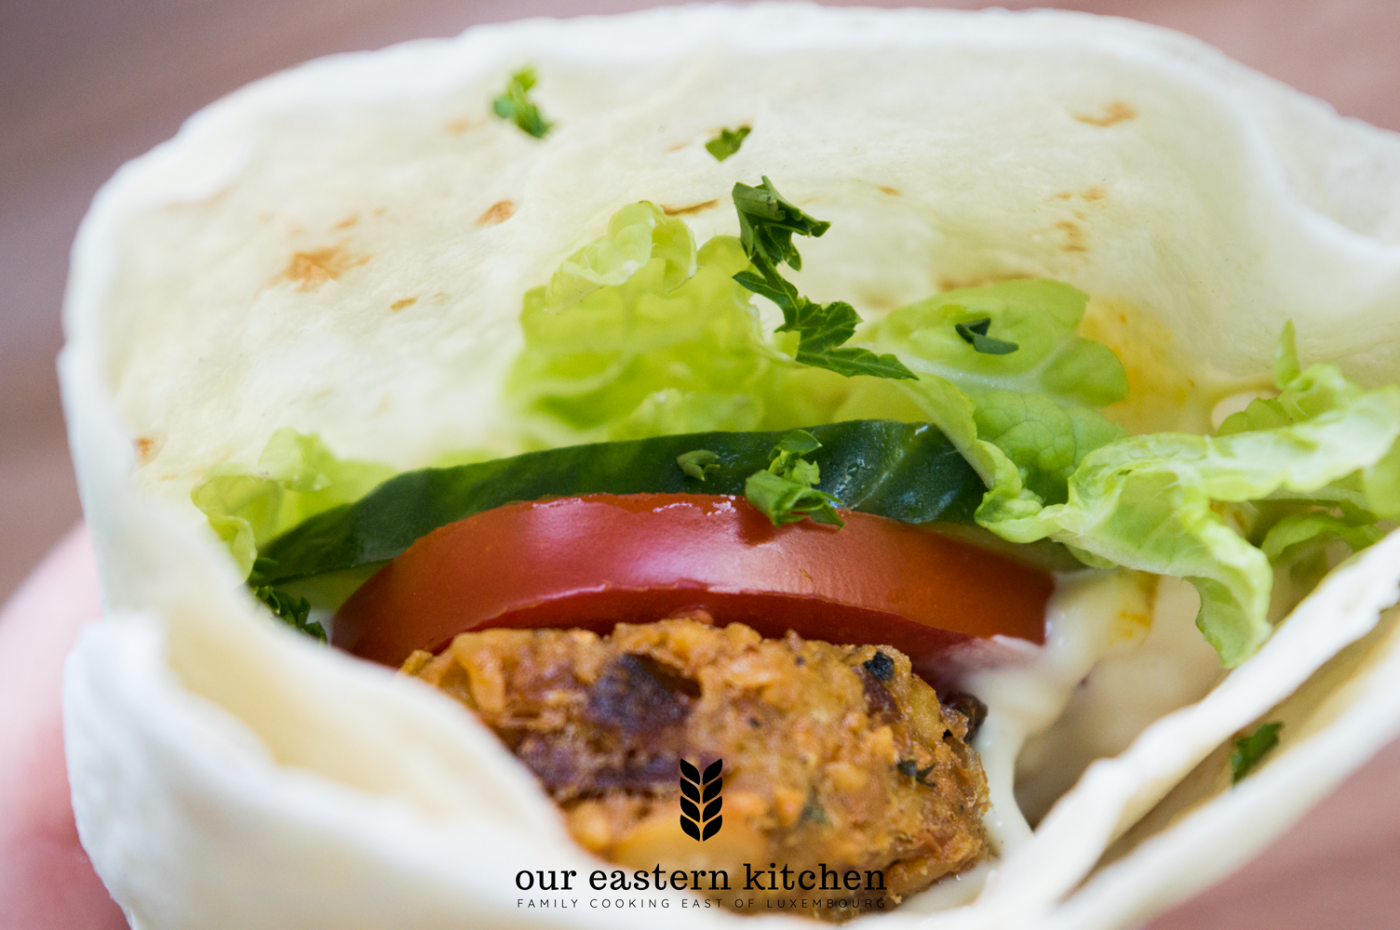 Our Eastern Kitchen - Our Favourite Falafel Recipe - Food Photography